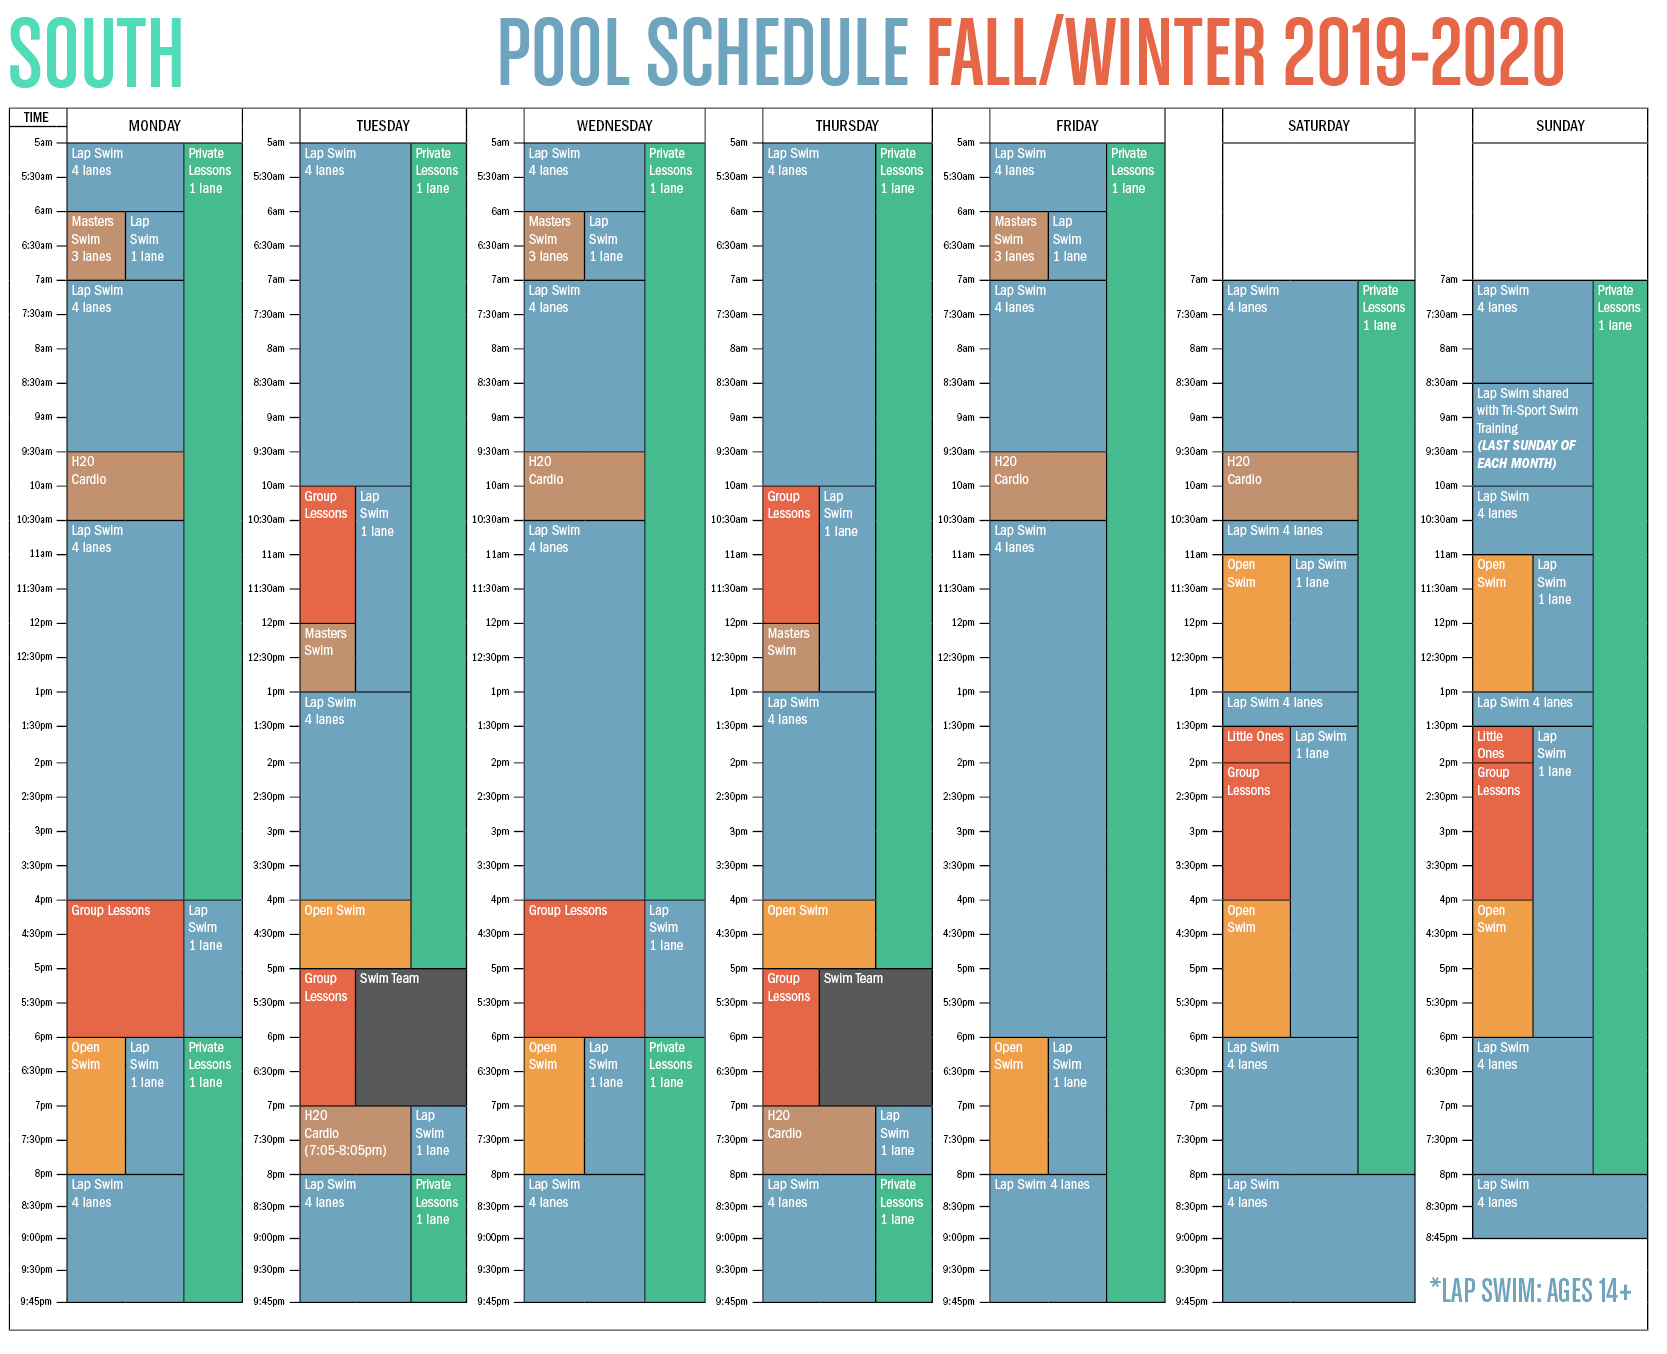 Q4-Q1 Fall-Winter South Pool Schedule [WEB]